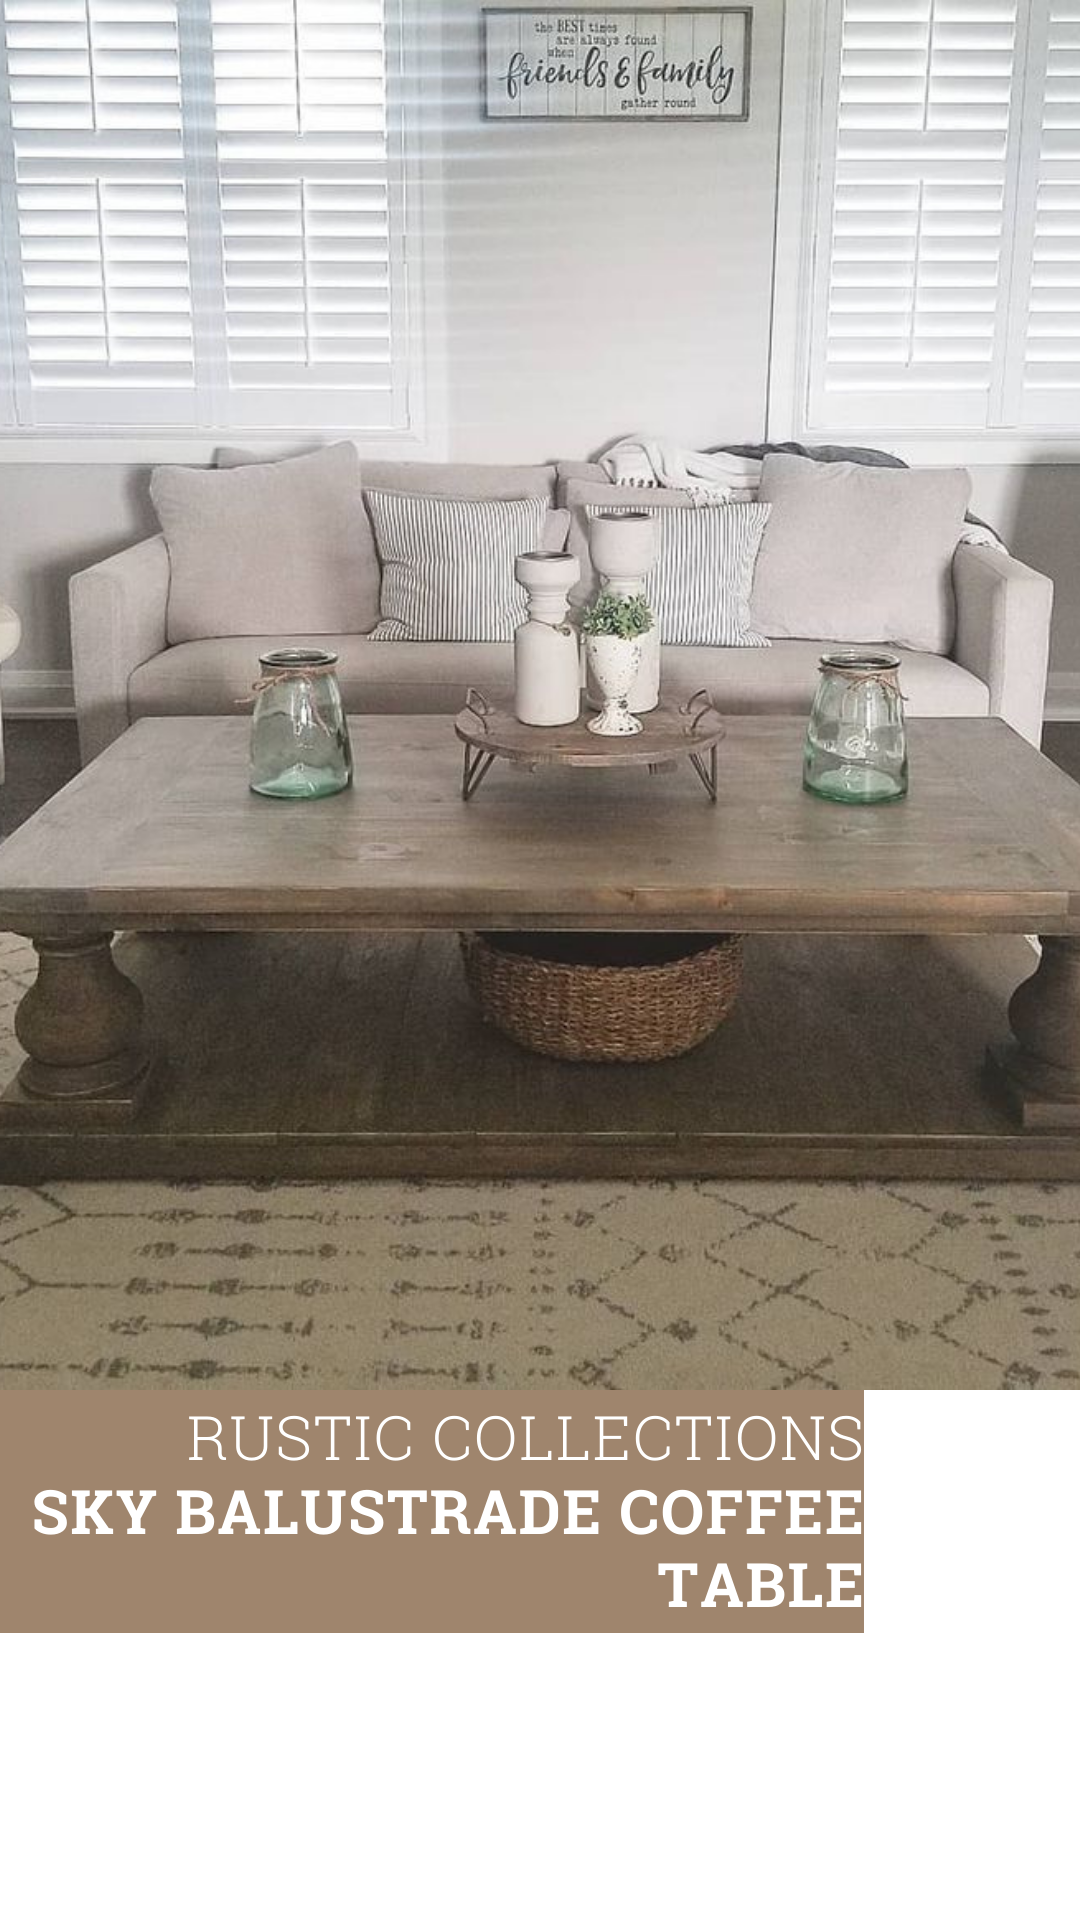 Sky Balustrade Coffee Table Rustic Collections